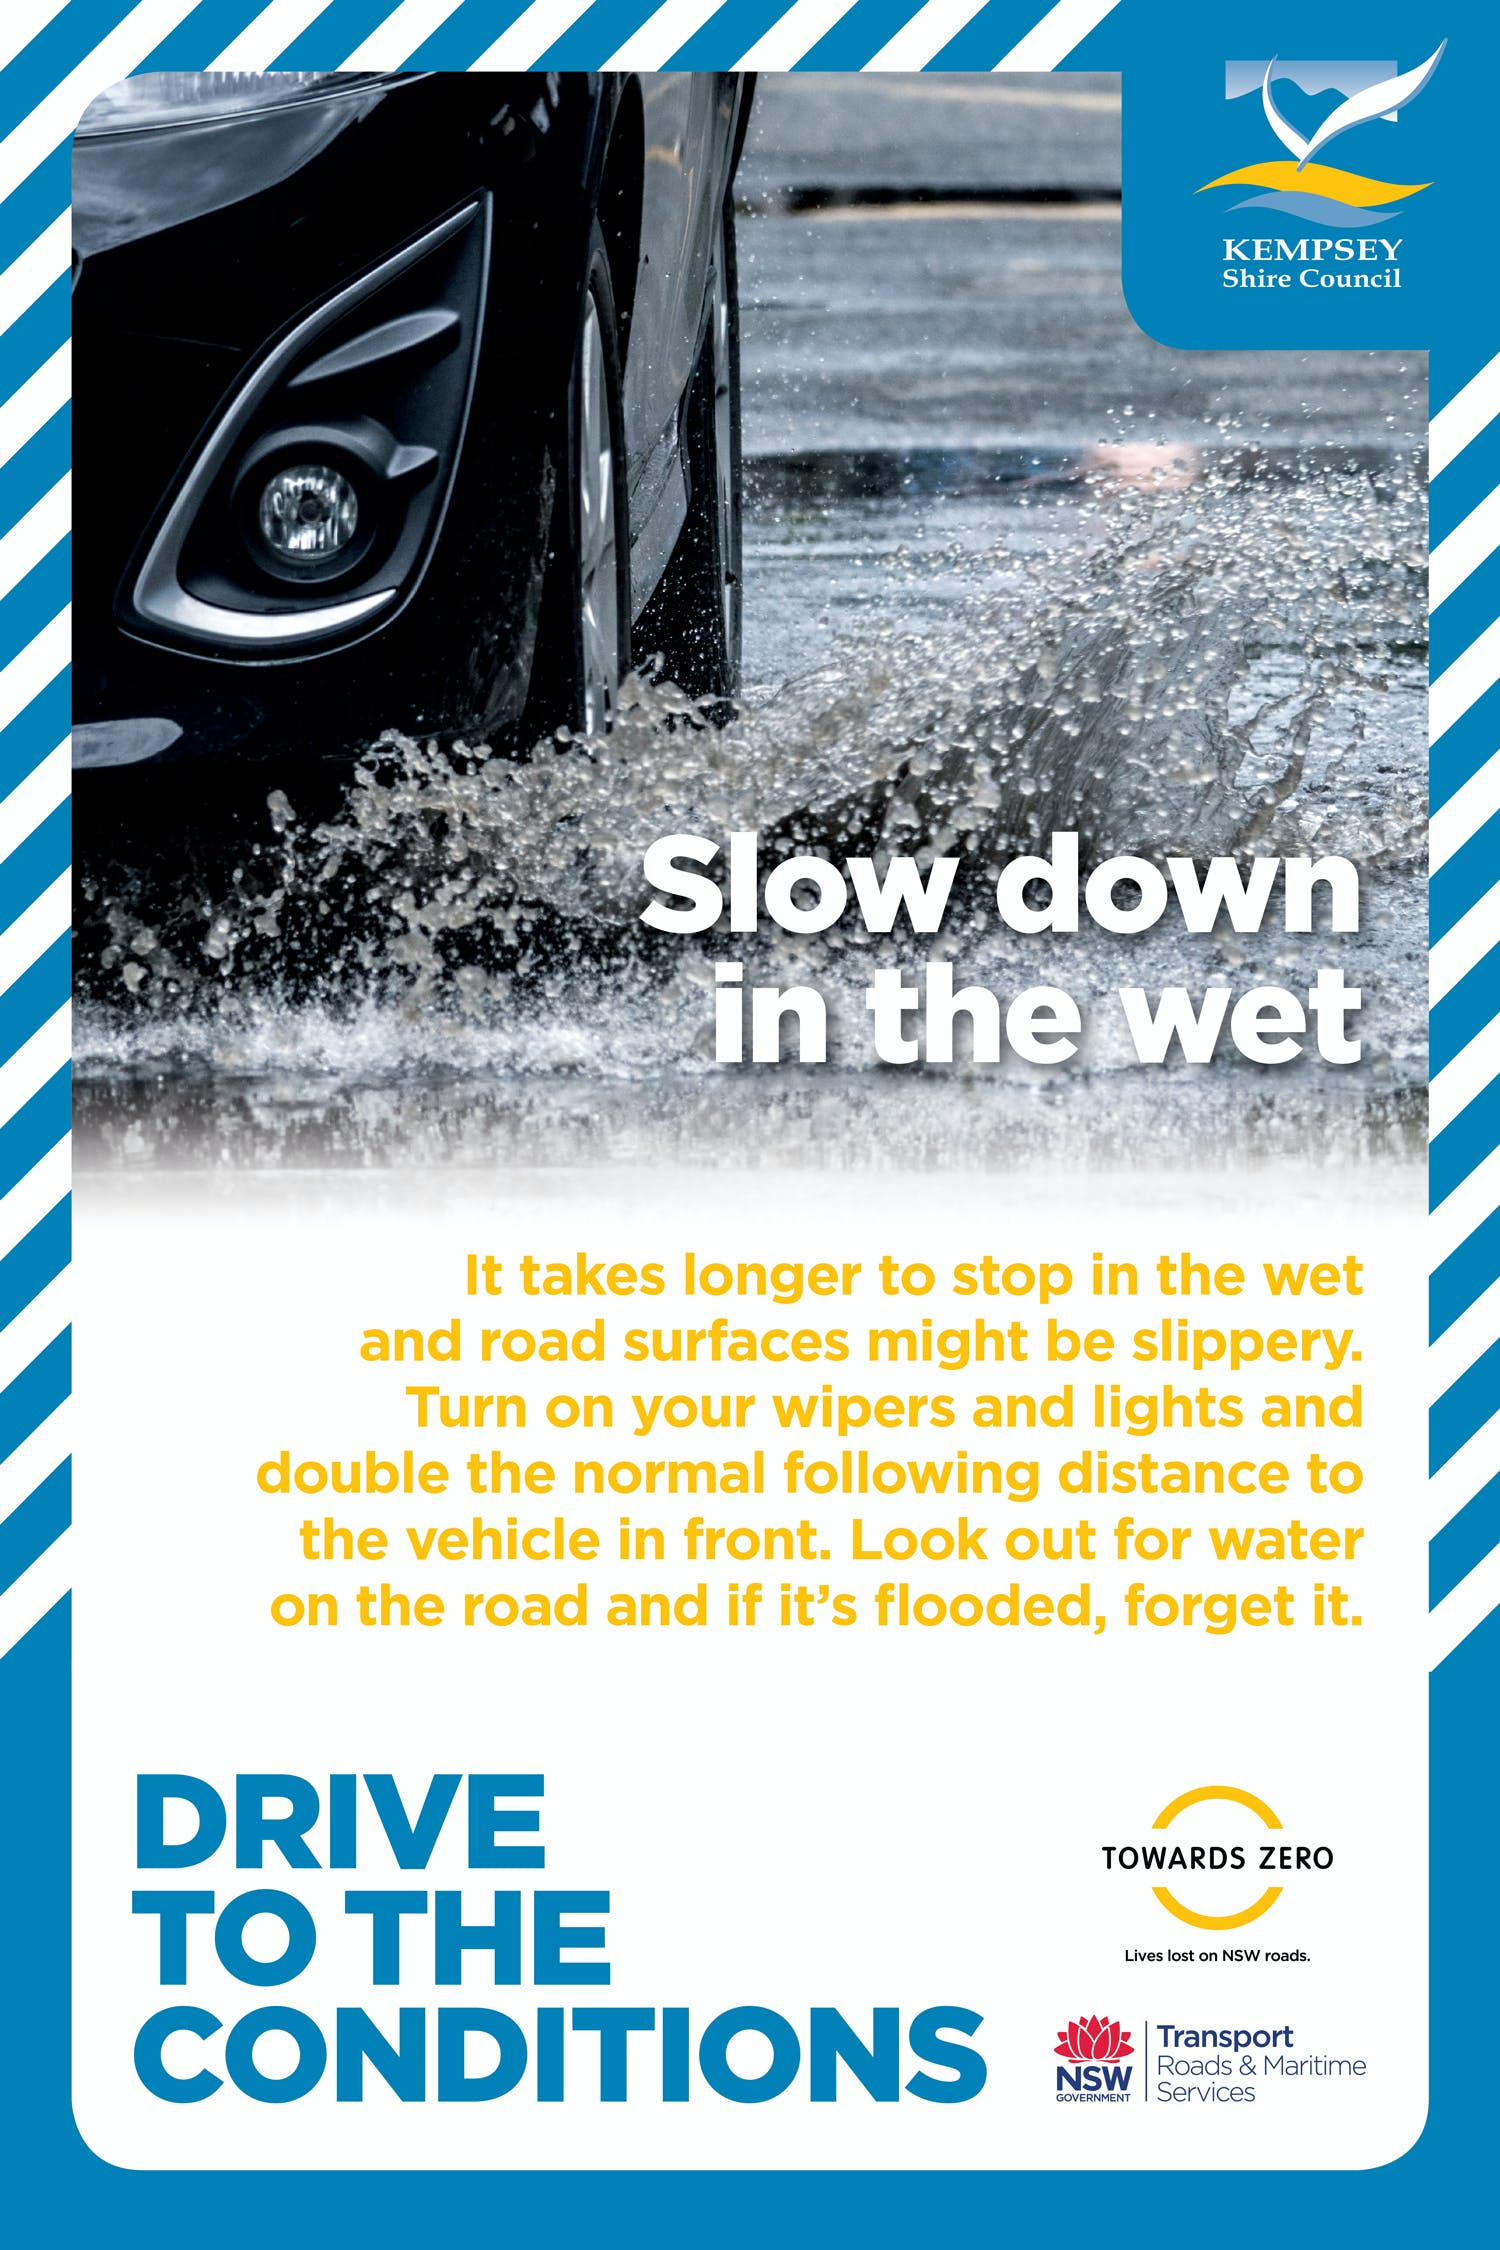 Slow down in the wet